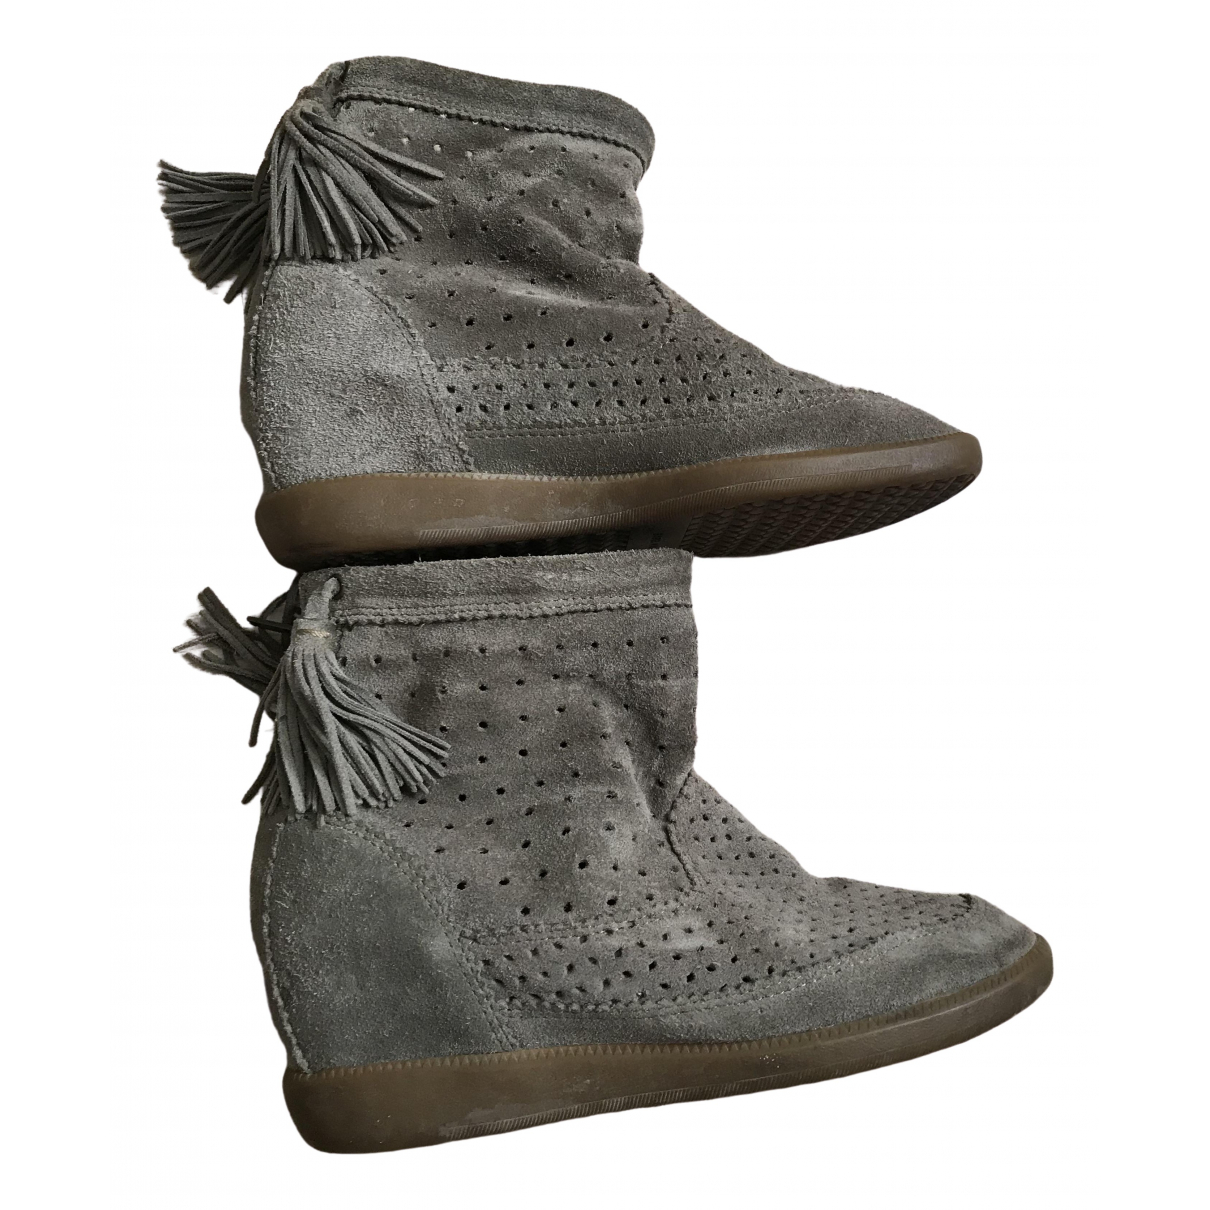 Isabel Marant Basley Beige Suede Ankle boots for Women 36 EU